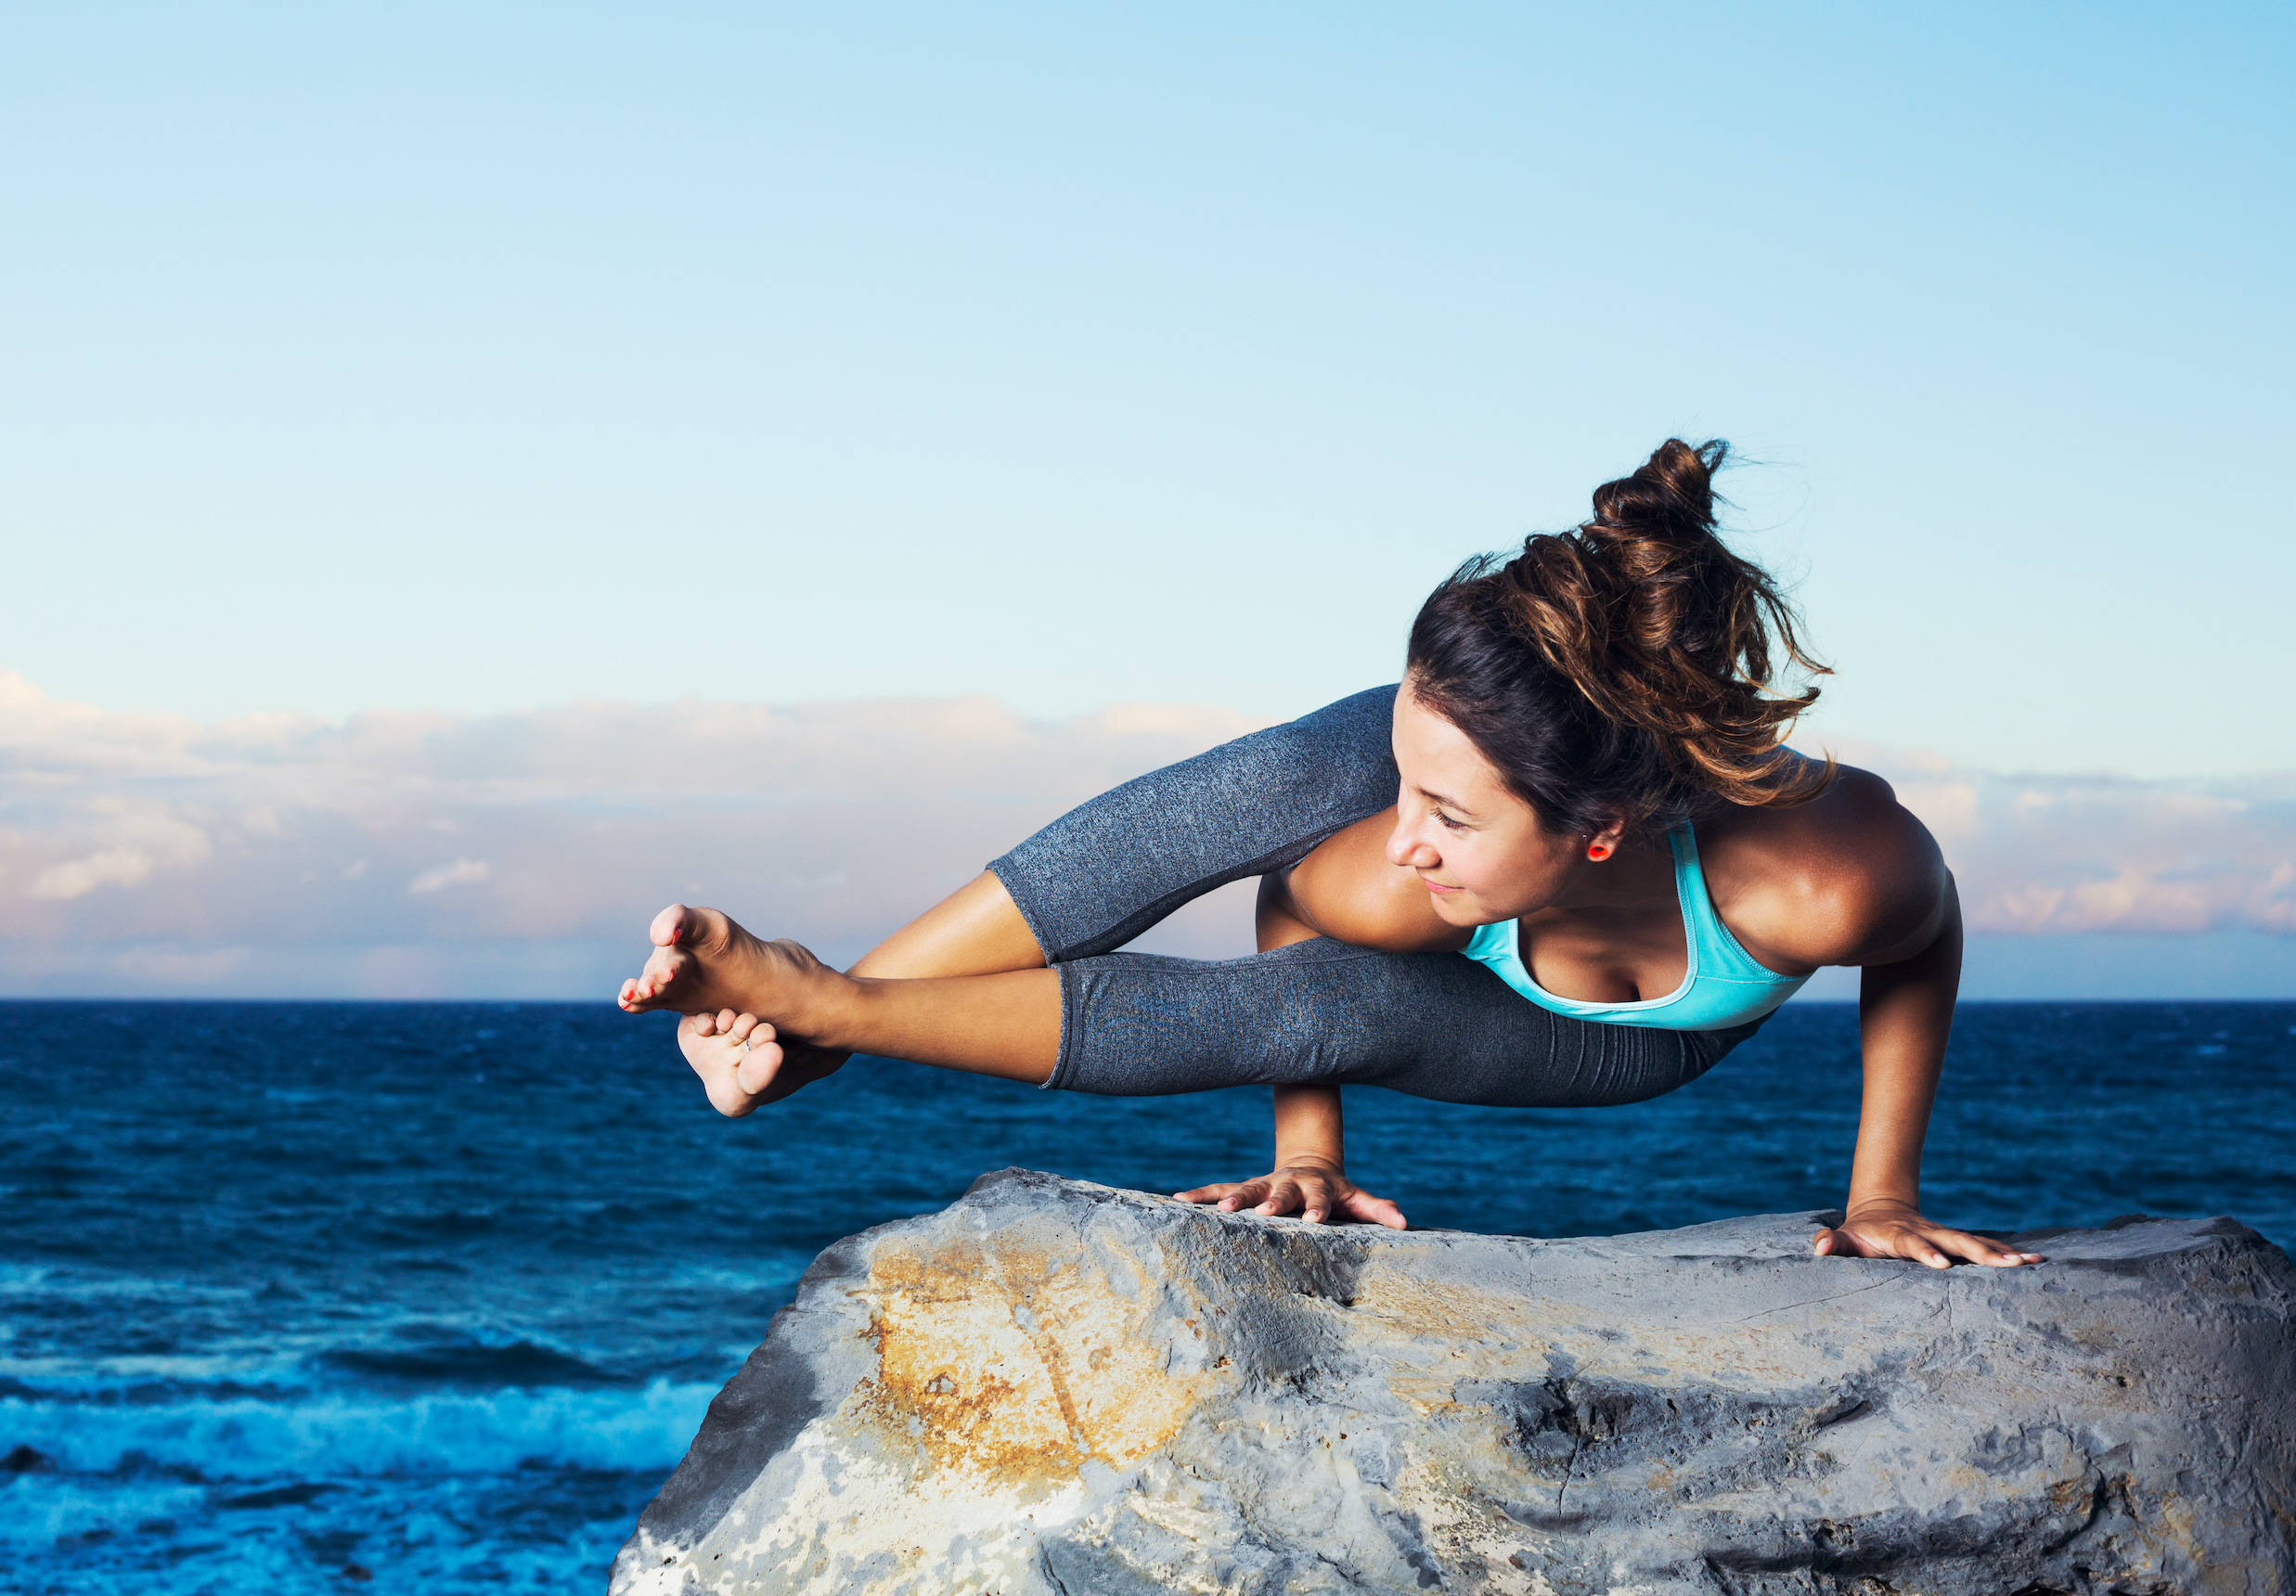 miami yoga hormone optimal balance